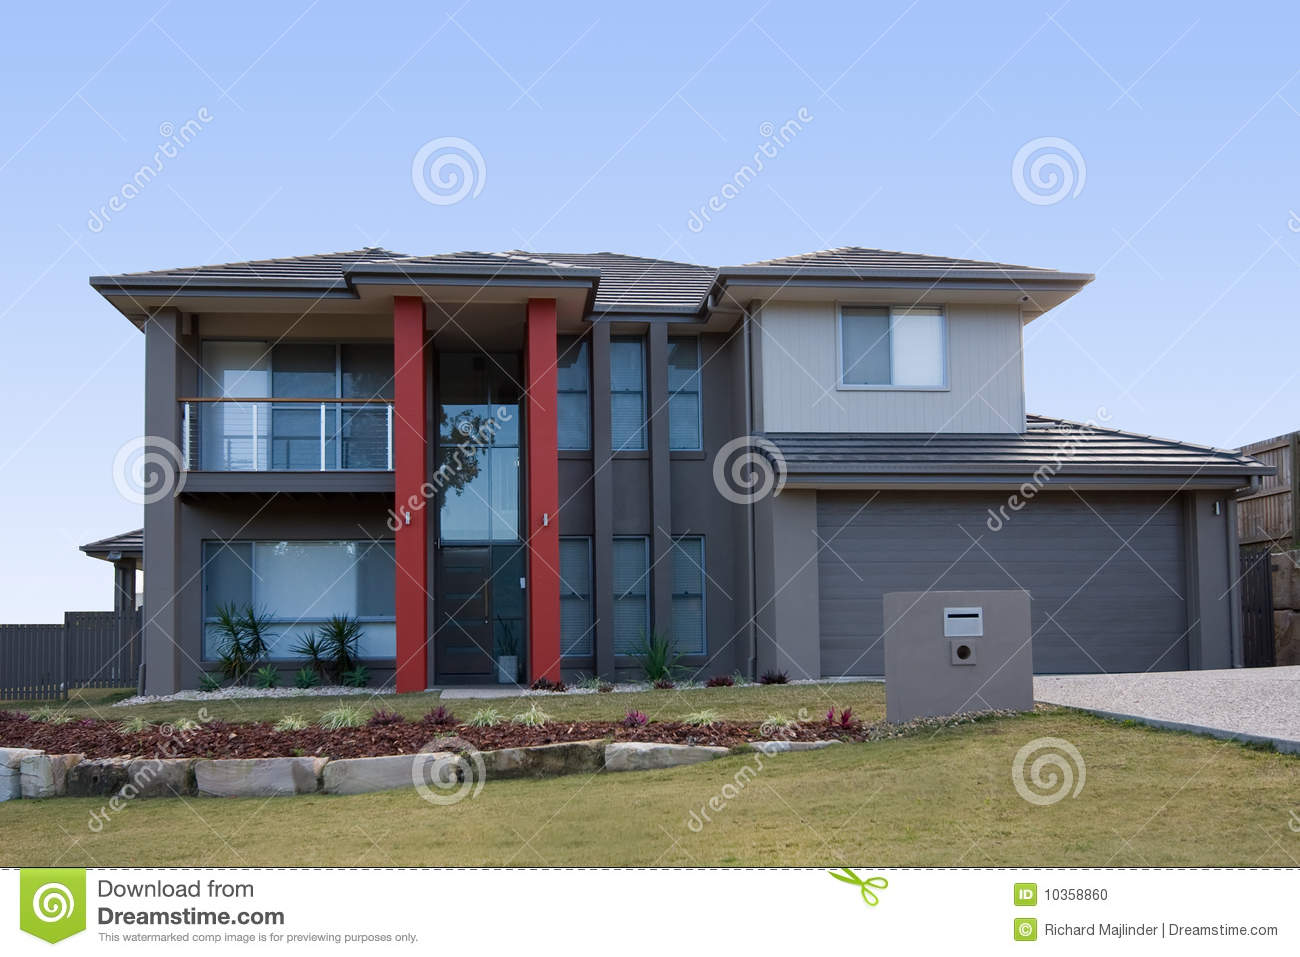 Maison Grise Moderne Avec Les Piliers Rouges Photo stock - Image ...